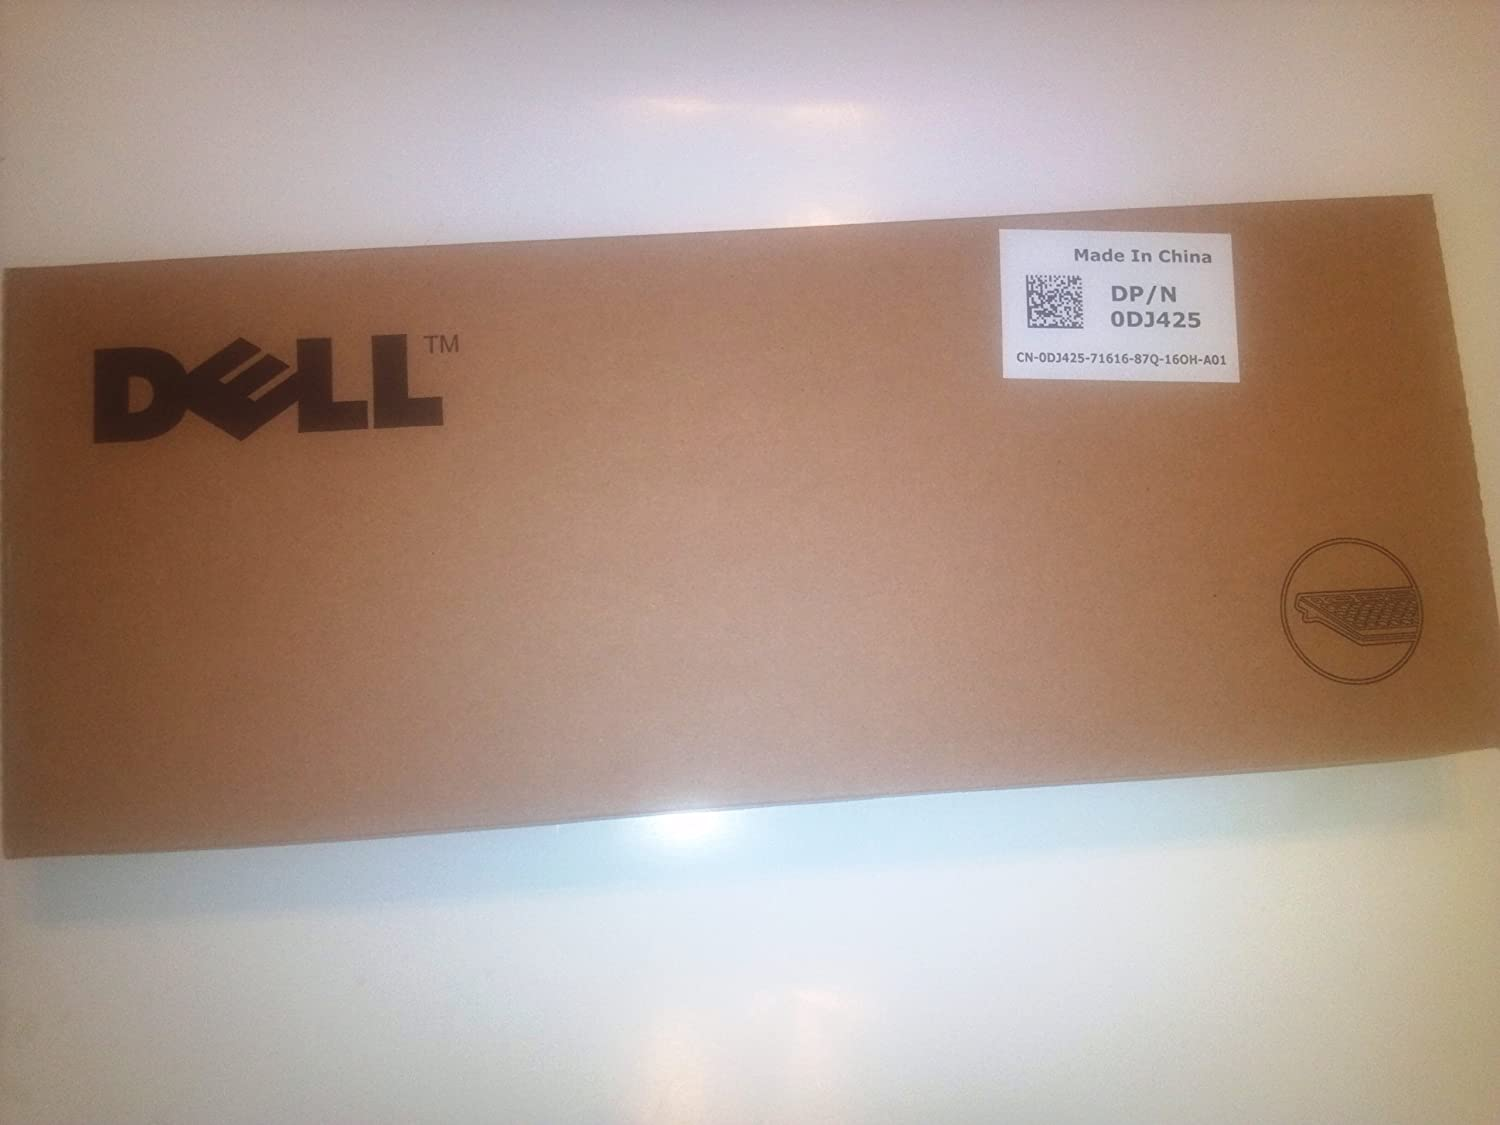 SK-8135 Genuine Dell MultiMedia 104-Key USB Black with Silver Trim Keyboard For Desktop Notebook Systems Extra USB Connectors Part//Model Numbers: DJ425 Y-UK-DEL1 TH836 N6250